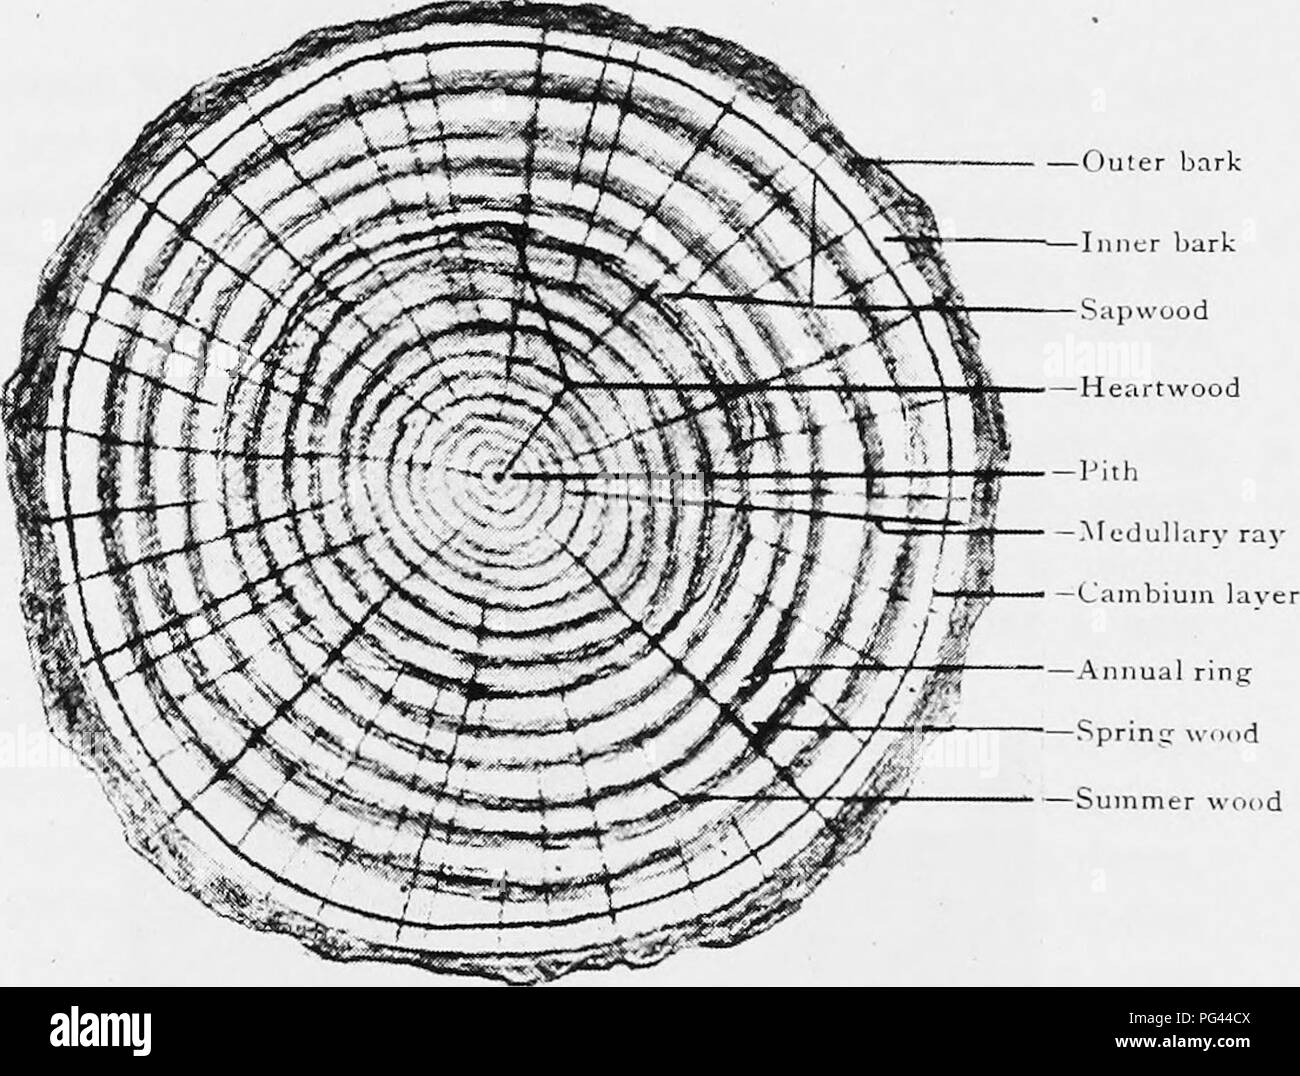 hight resolution of this diagrams shows the annual rings of a tree trunk wiring annual tree ring diagram